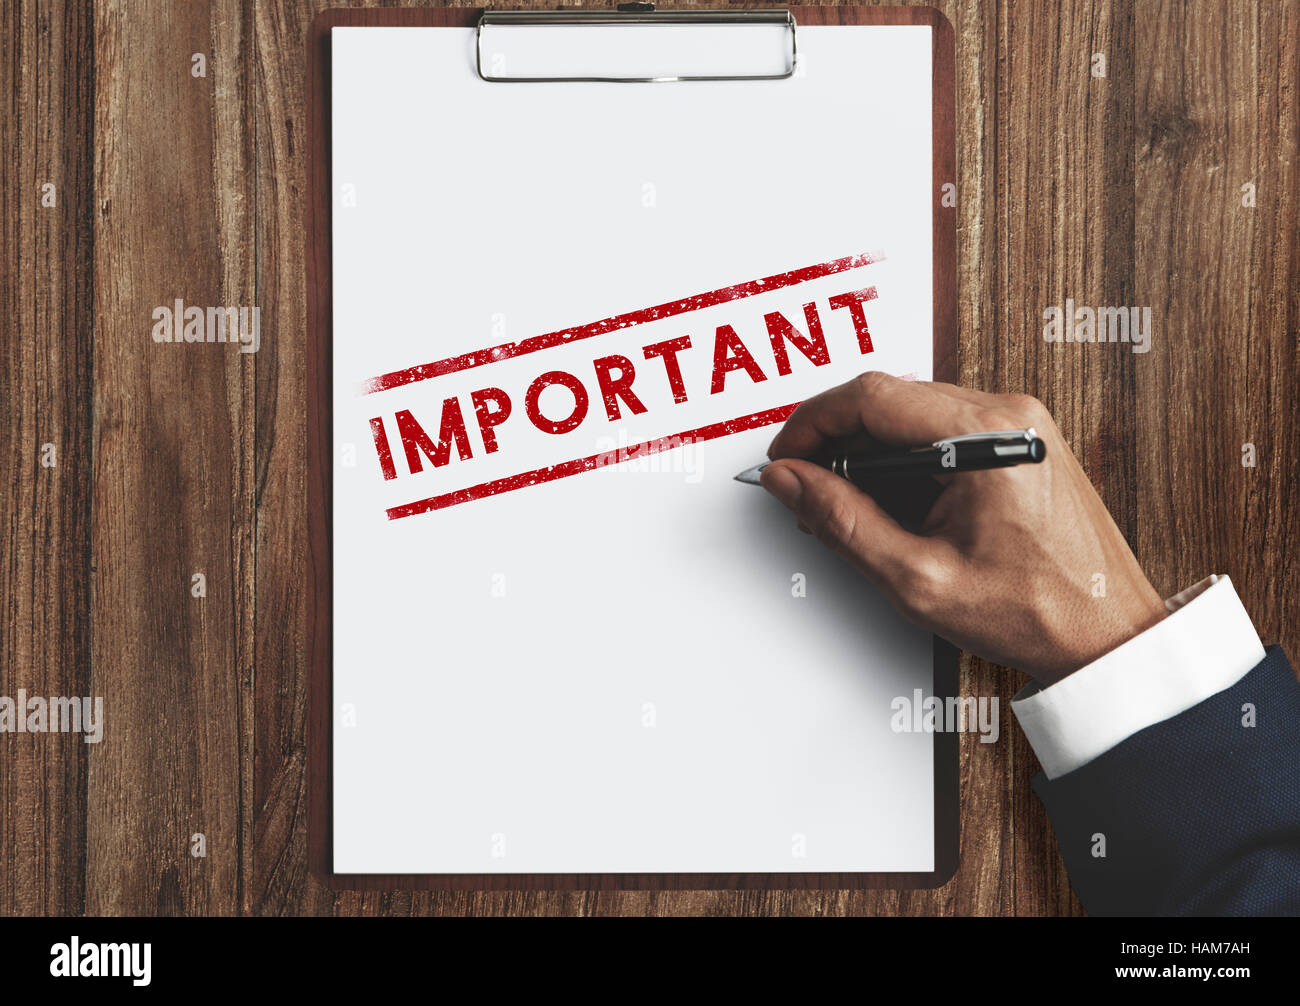 Important Prioritize Tasks Urgent Issues Order Concept - Stock Image